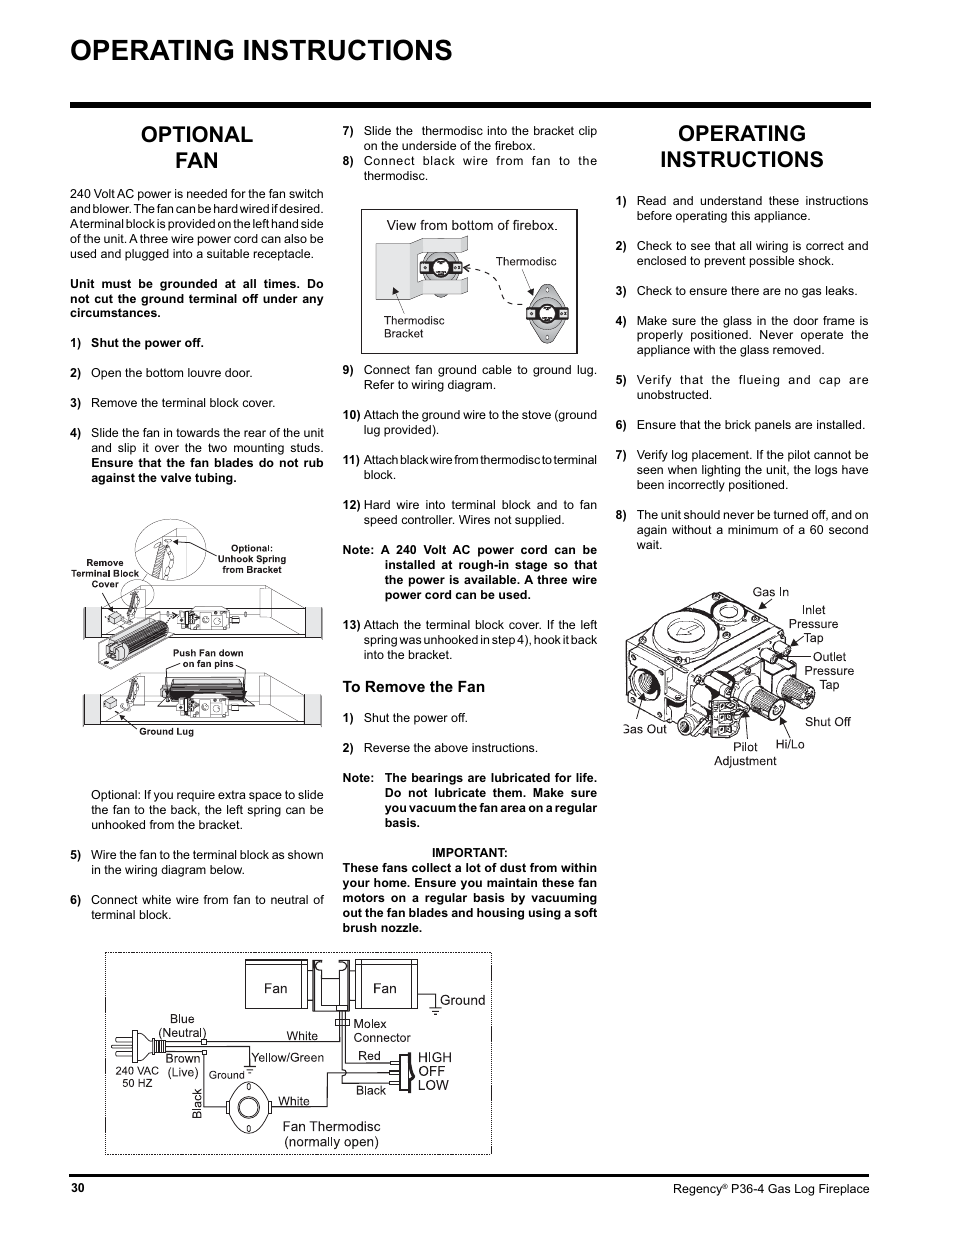 regency wraps p36 lpg4 page30 thermodisc wiring 3 wire switch diagram wiring diagrams thermodisc wiring diagram at bakdesigns.co